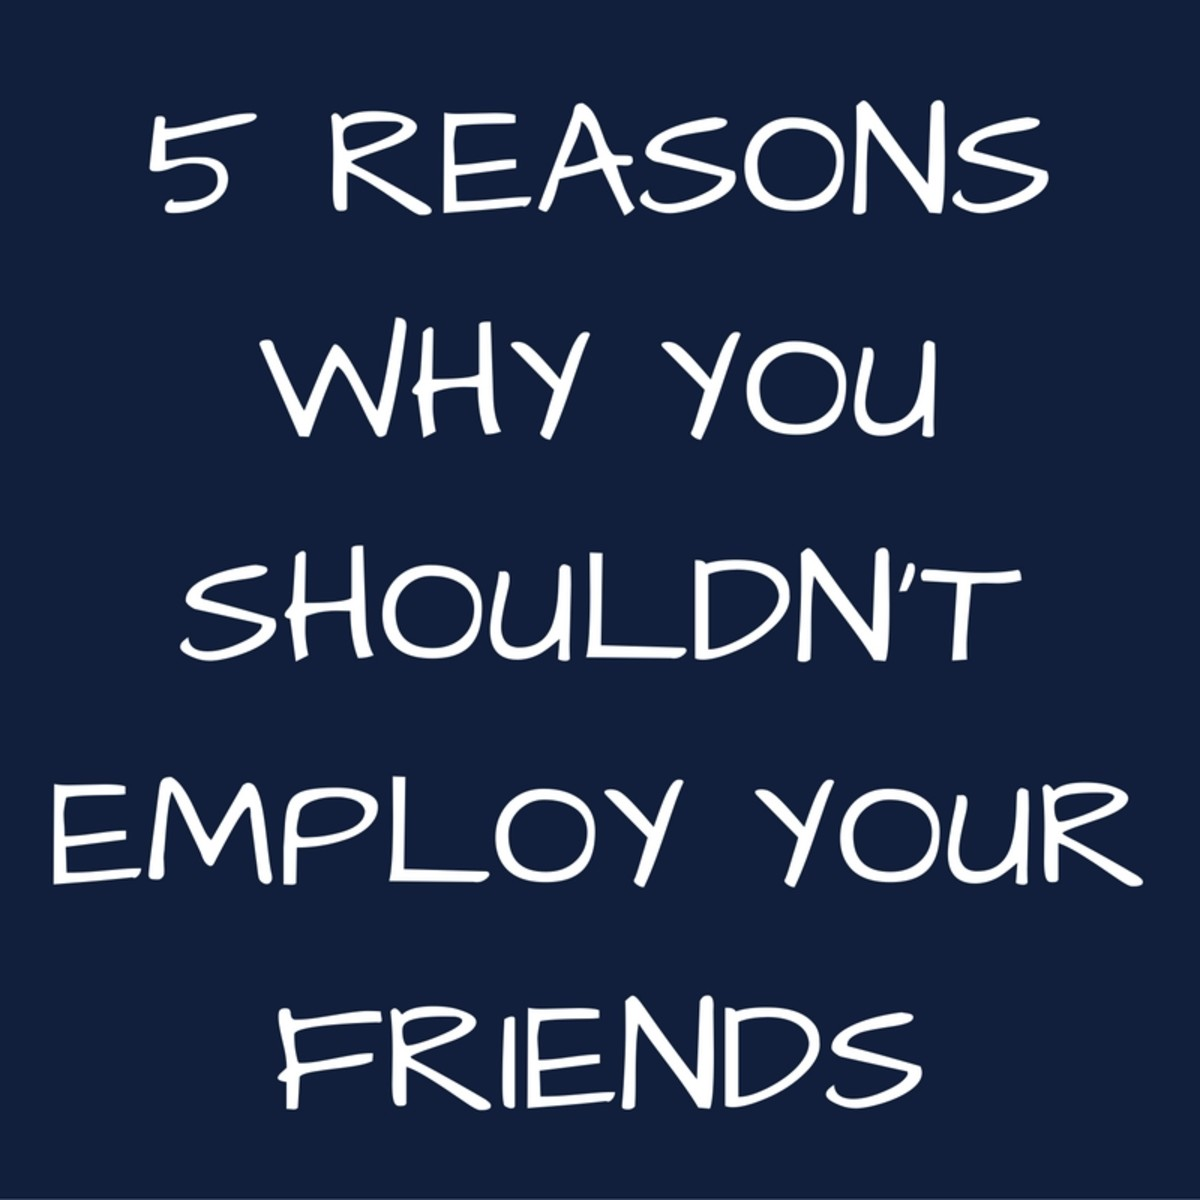 5 Reasons Why You Shouldn't Employ Your Friends